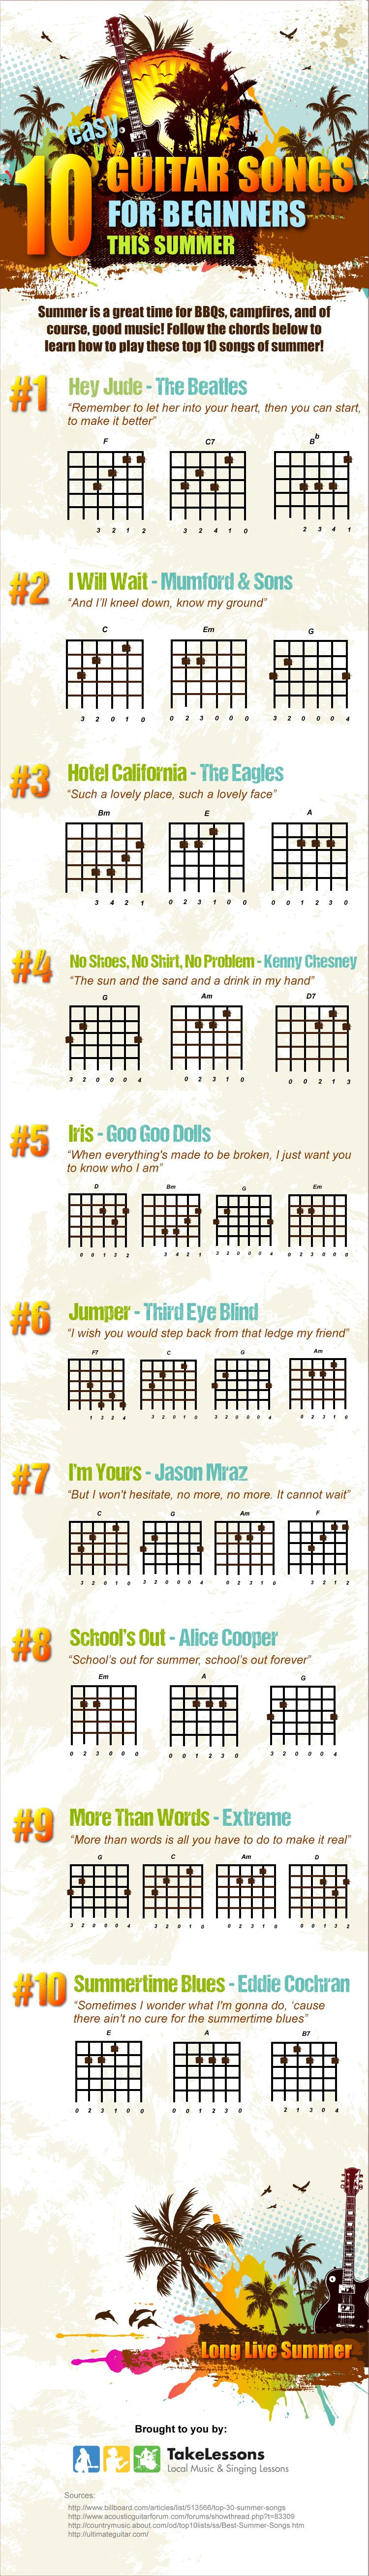 10 easy guitar songs for beginners this summer not left handed 10 easy guitar songs for beginners this summer not left handed though hexwebz Images